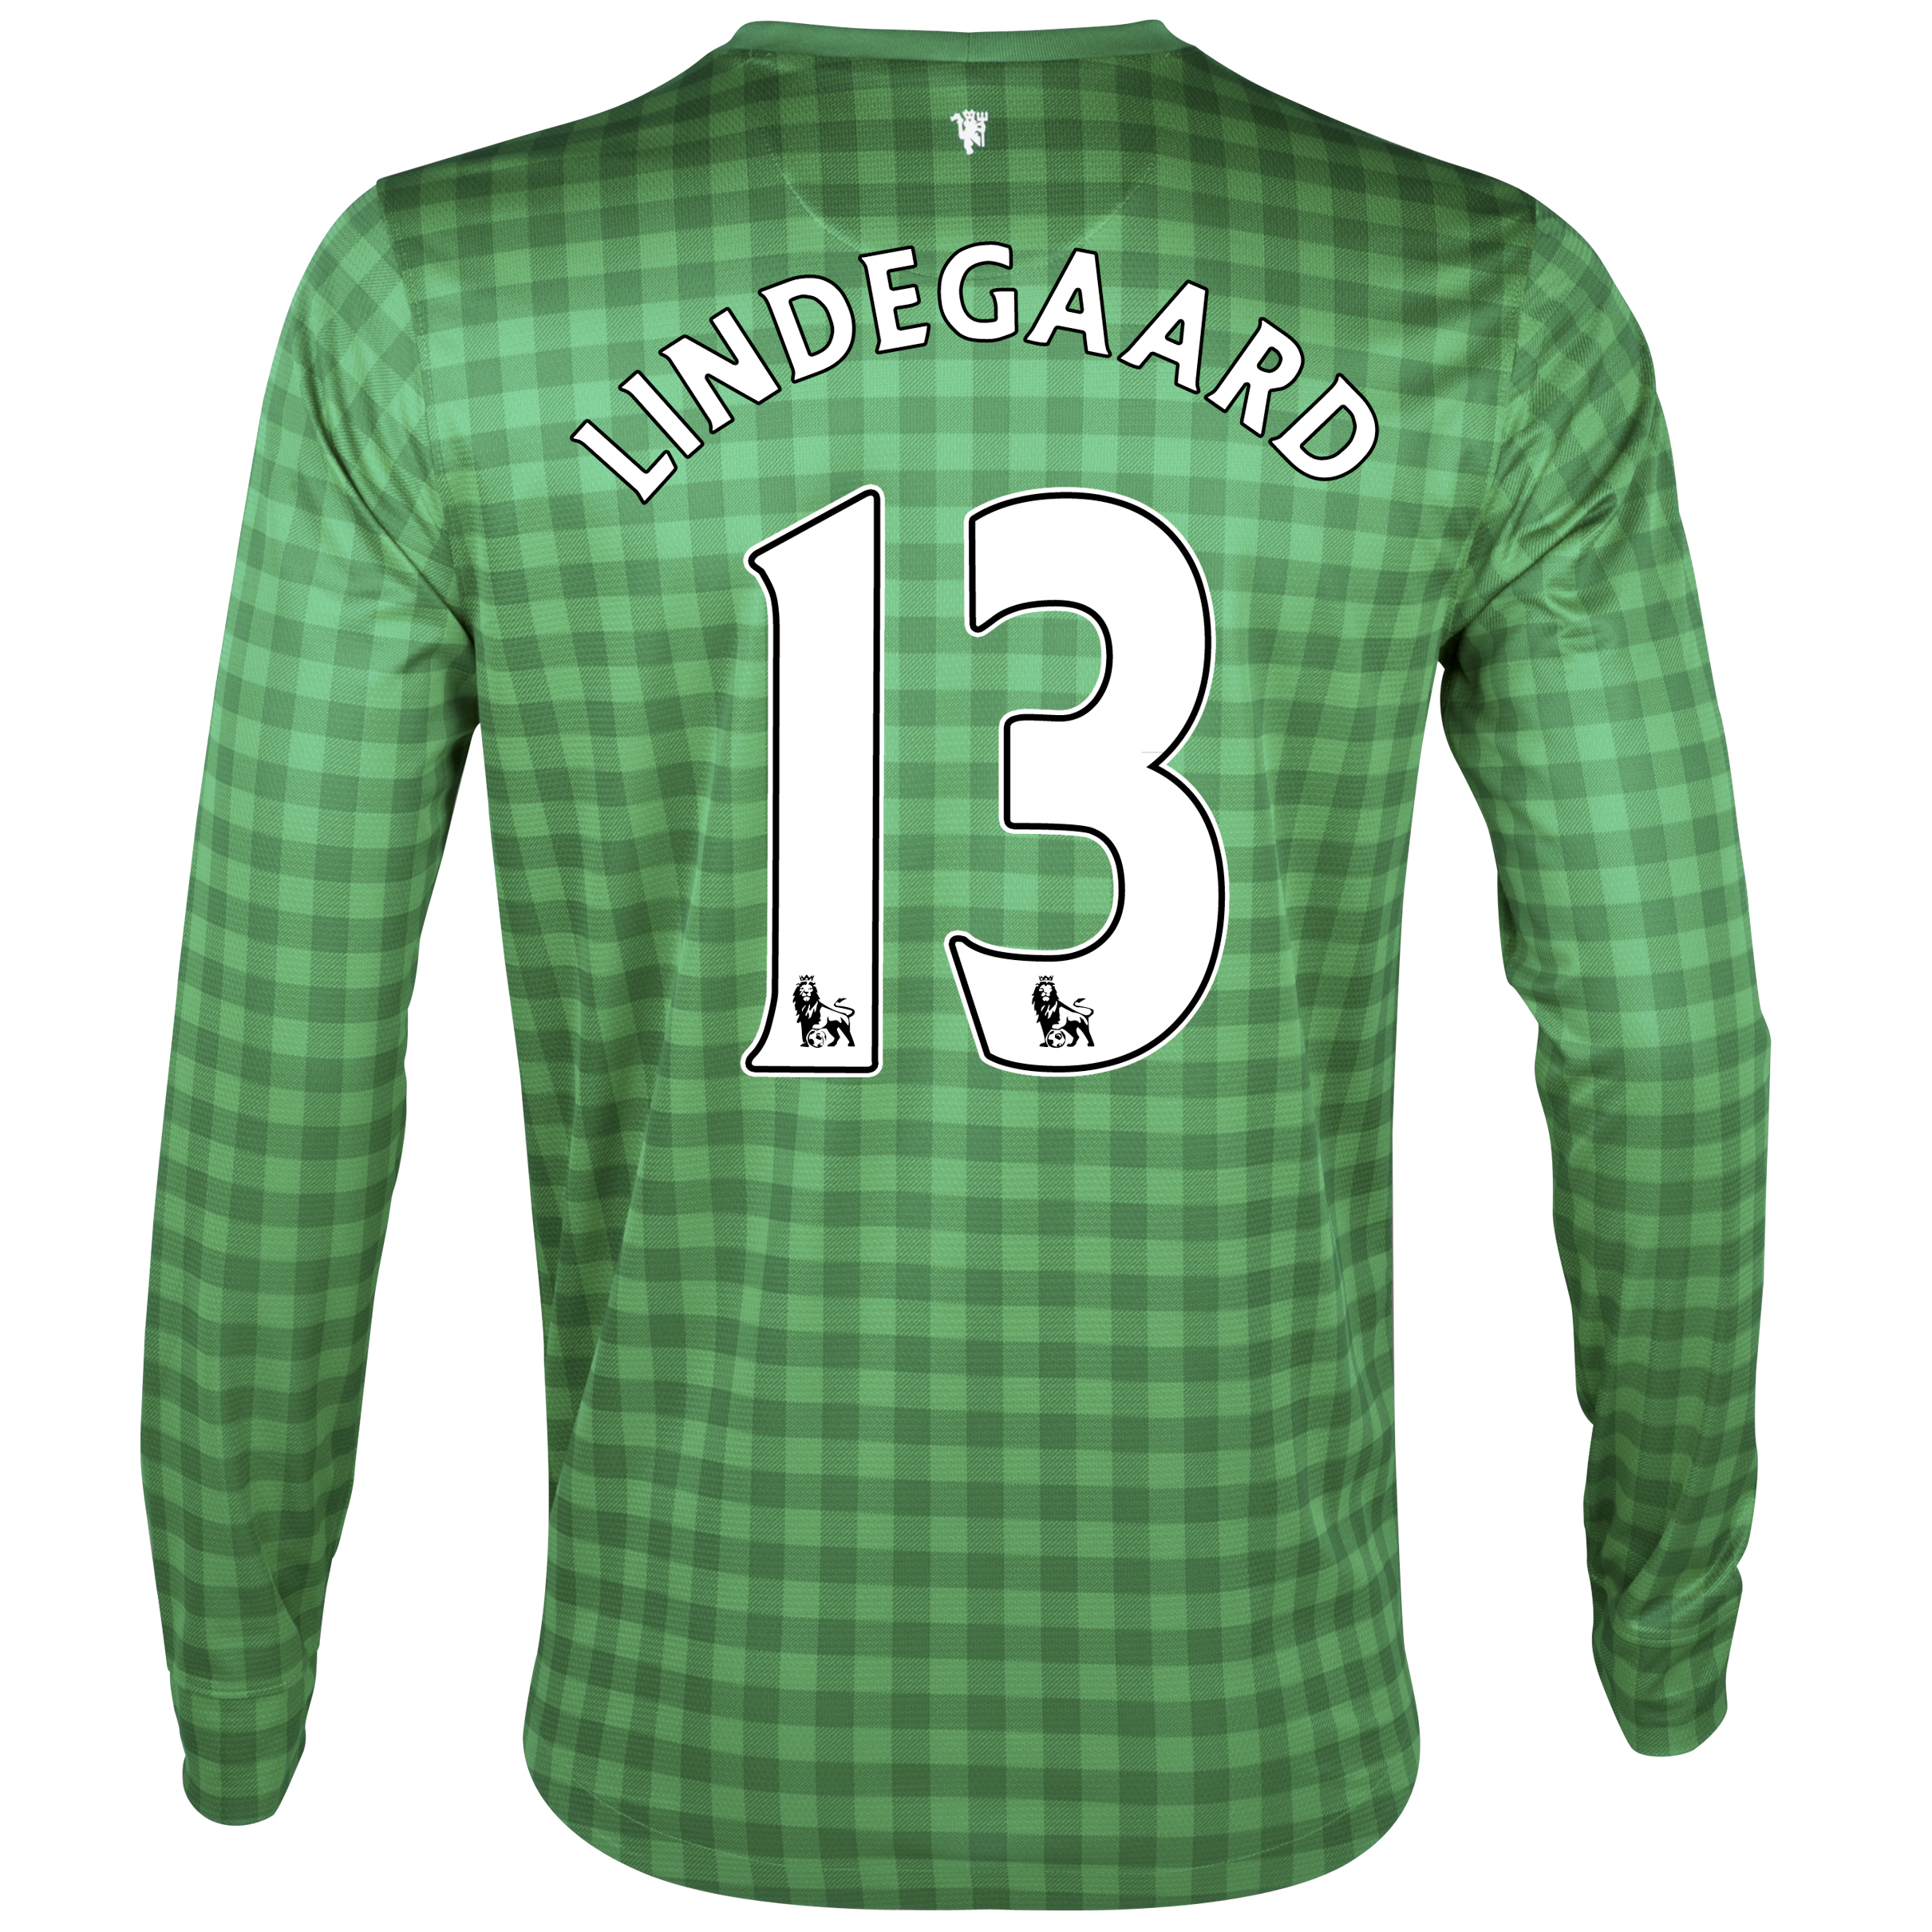 Manchester United Home Goalkeeper Shirt 2012/13 with Lindegaard 13 printing